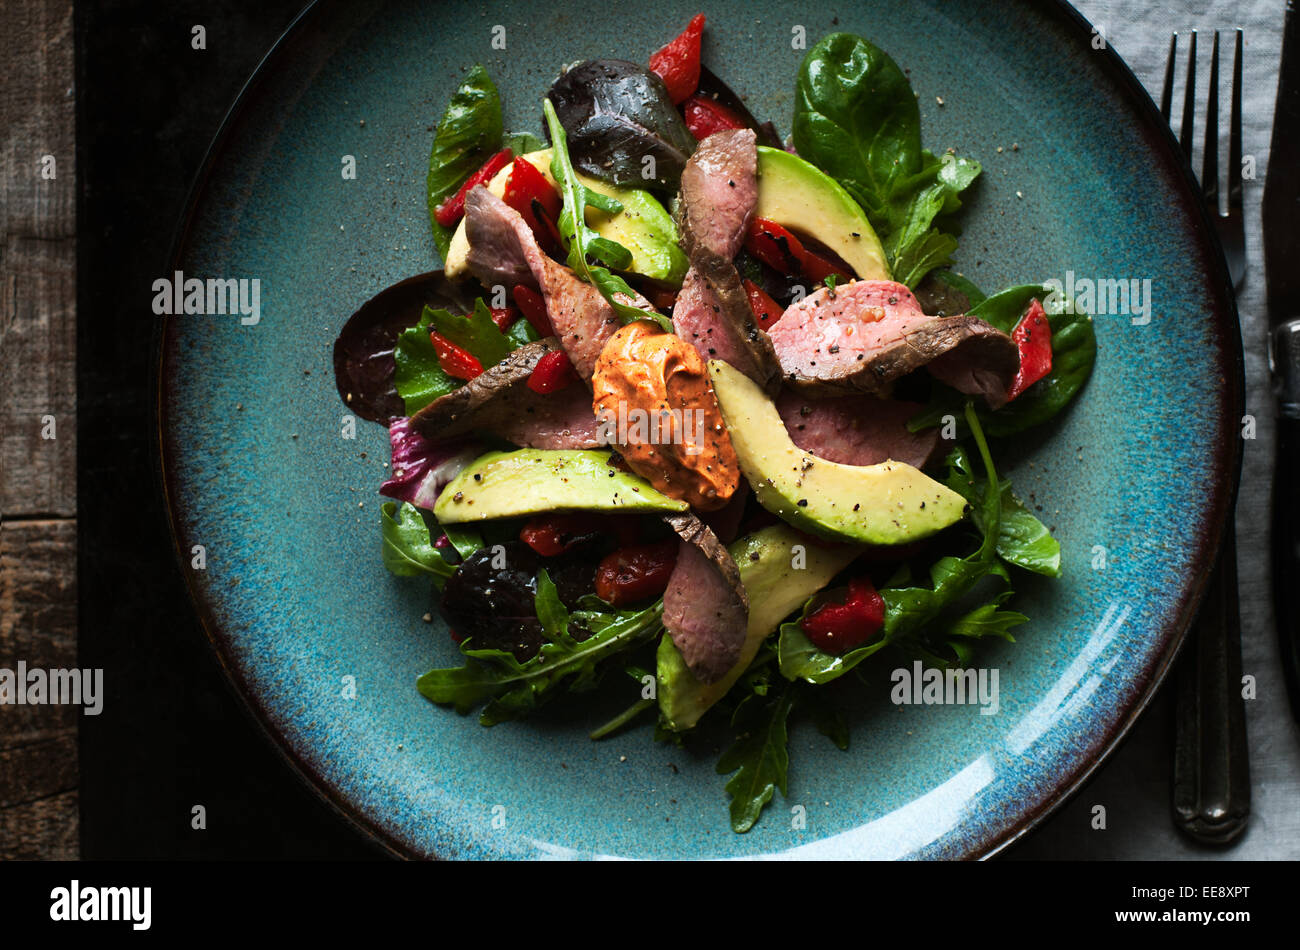 Mixed green salad with roast beef and smoked paprika aioli - Stock Image